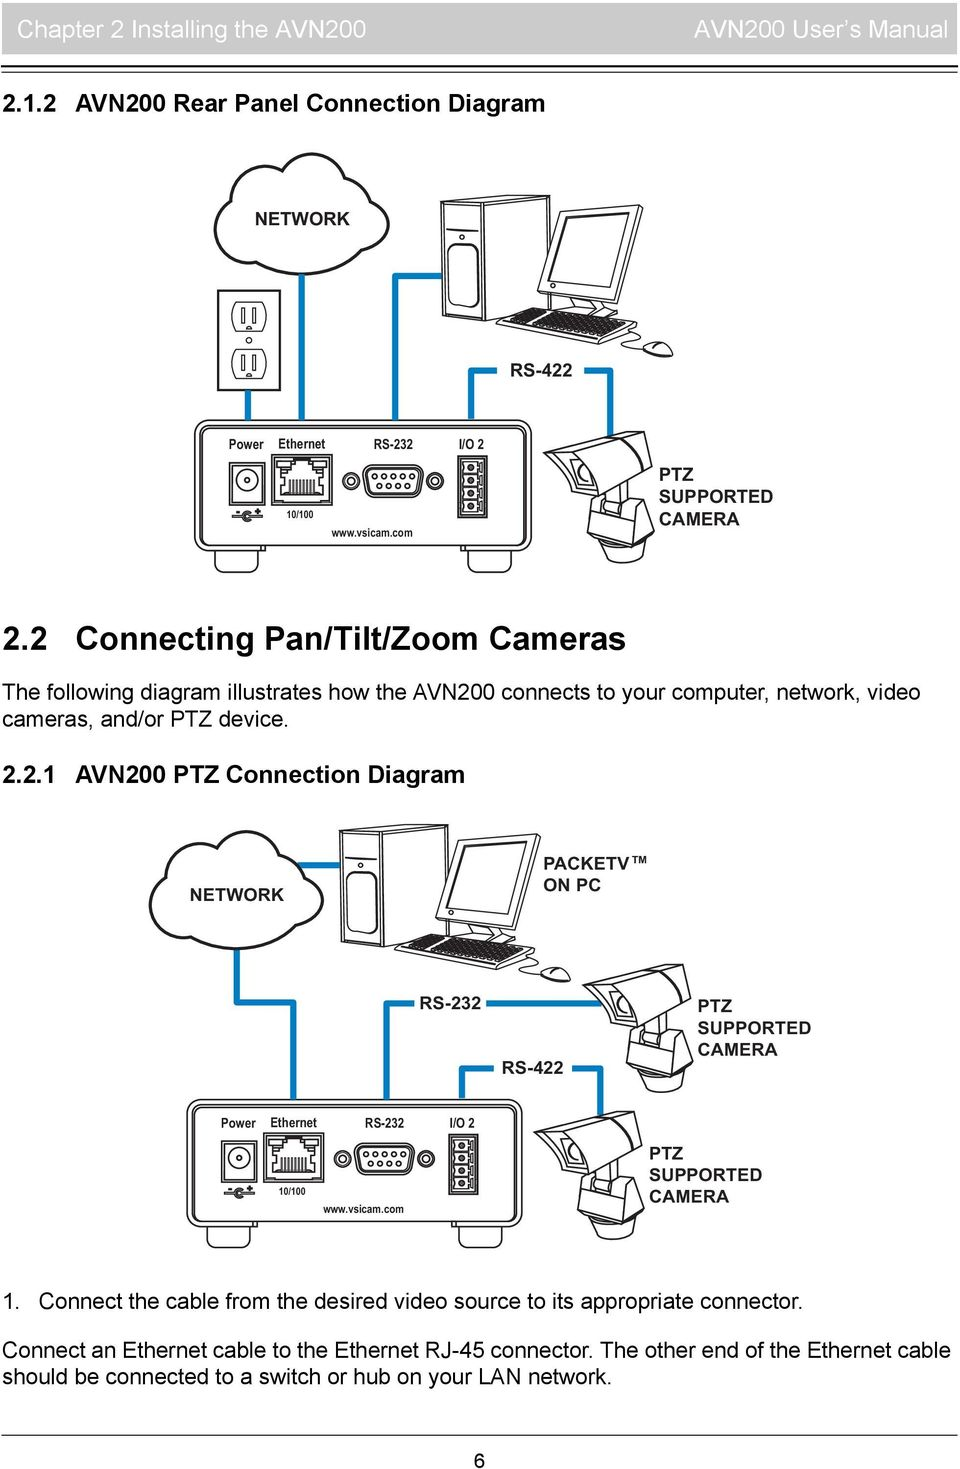 Avn200 Mpeg 2 Ip Audio Video Node User S Manual Pdf Lan Network Cable Wiring Diagram Connect The From Desired Source